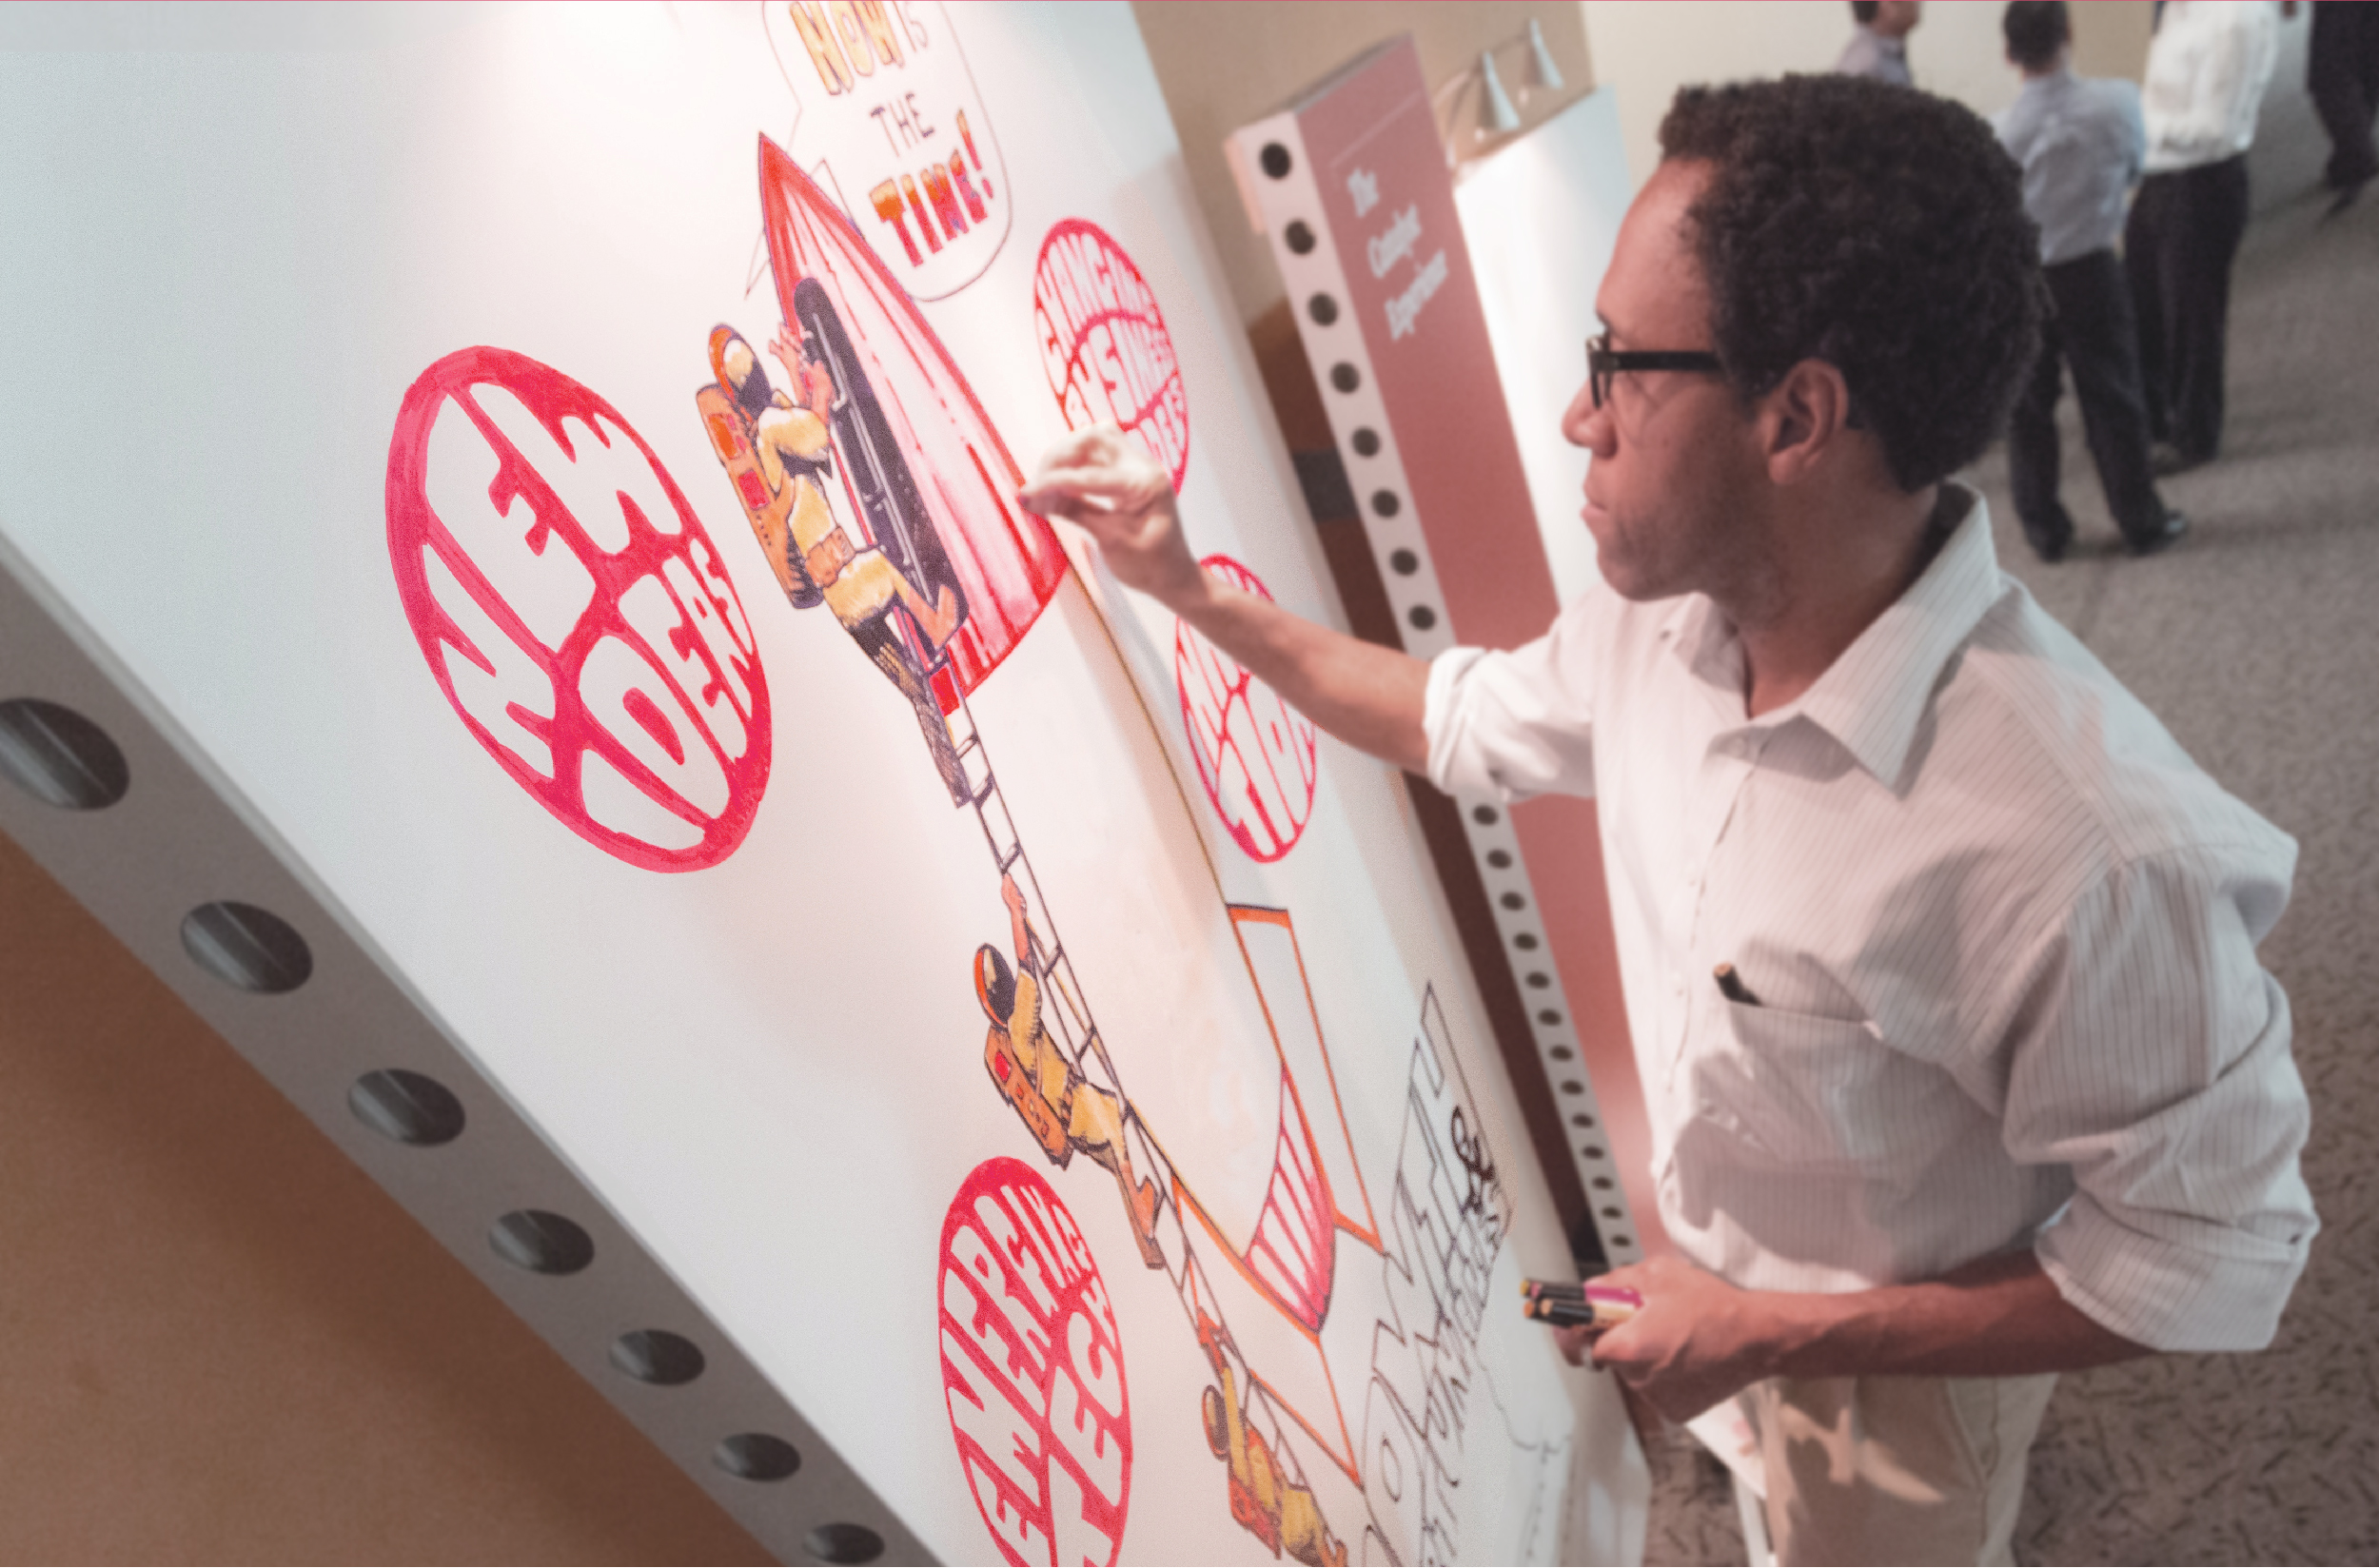 Christopher Fuller, CEO and Chief Scribe of Griot's Eye drawing a rocket ship while graphic recording